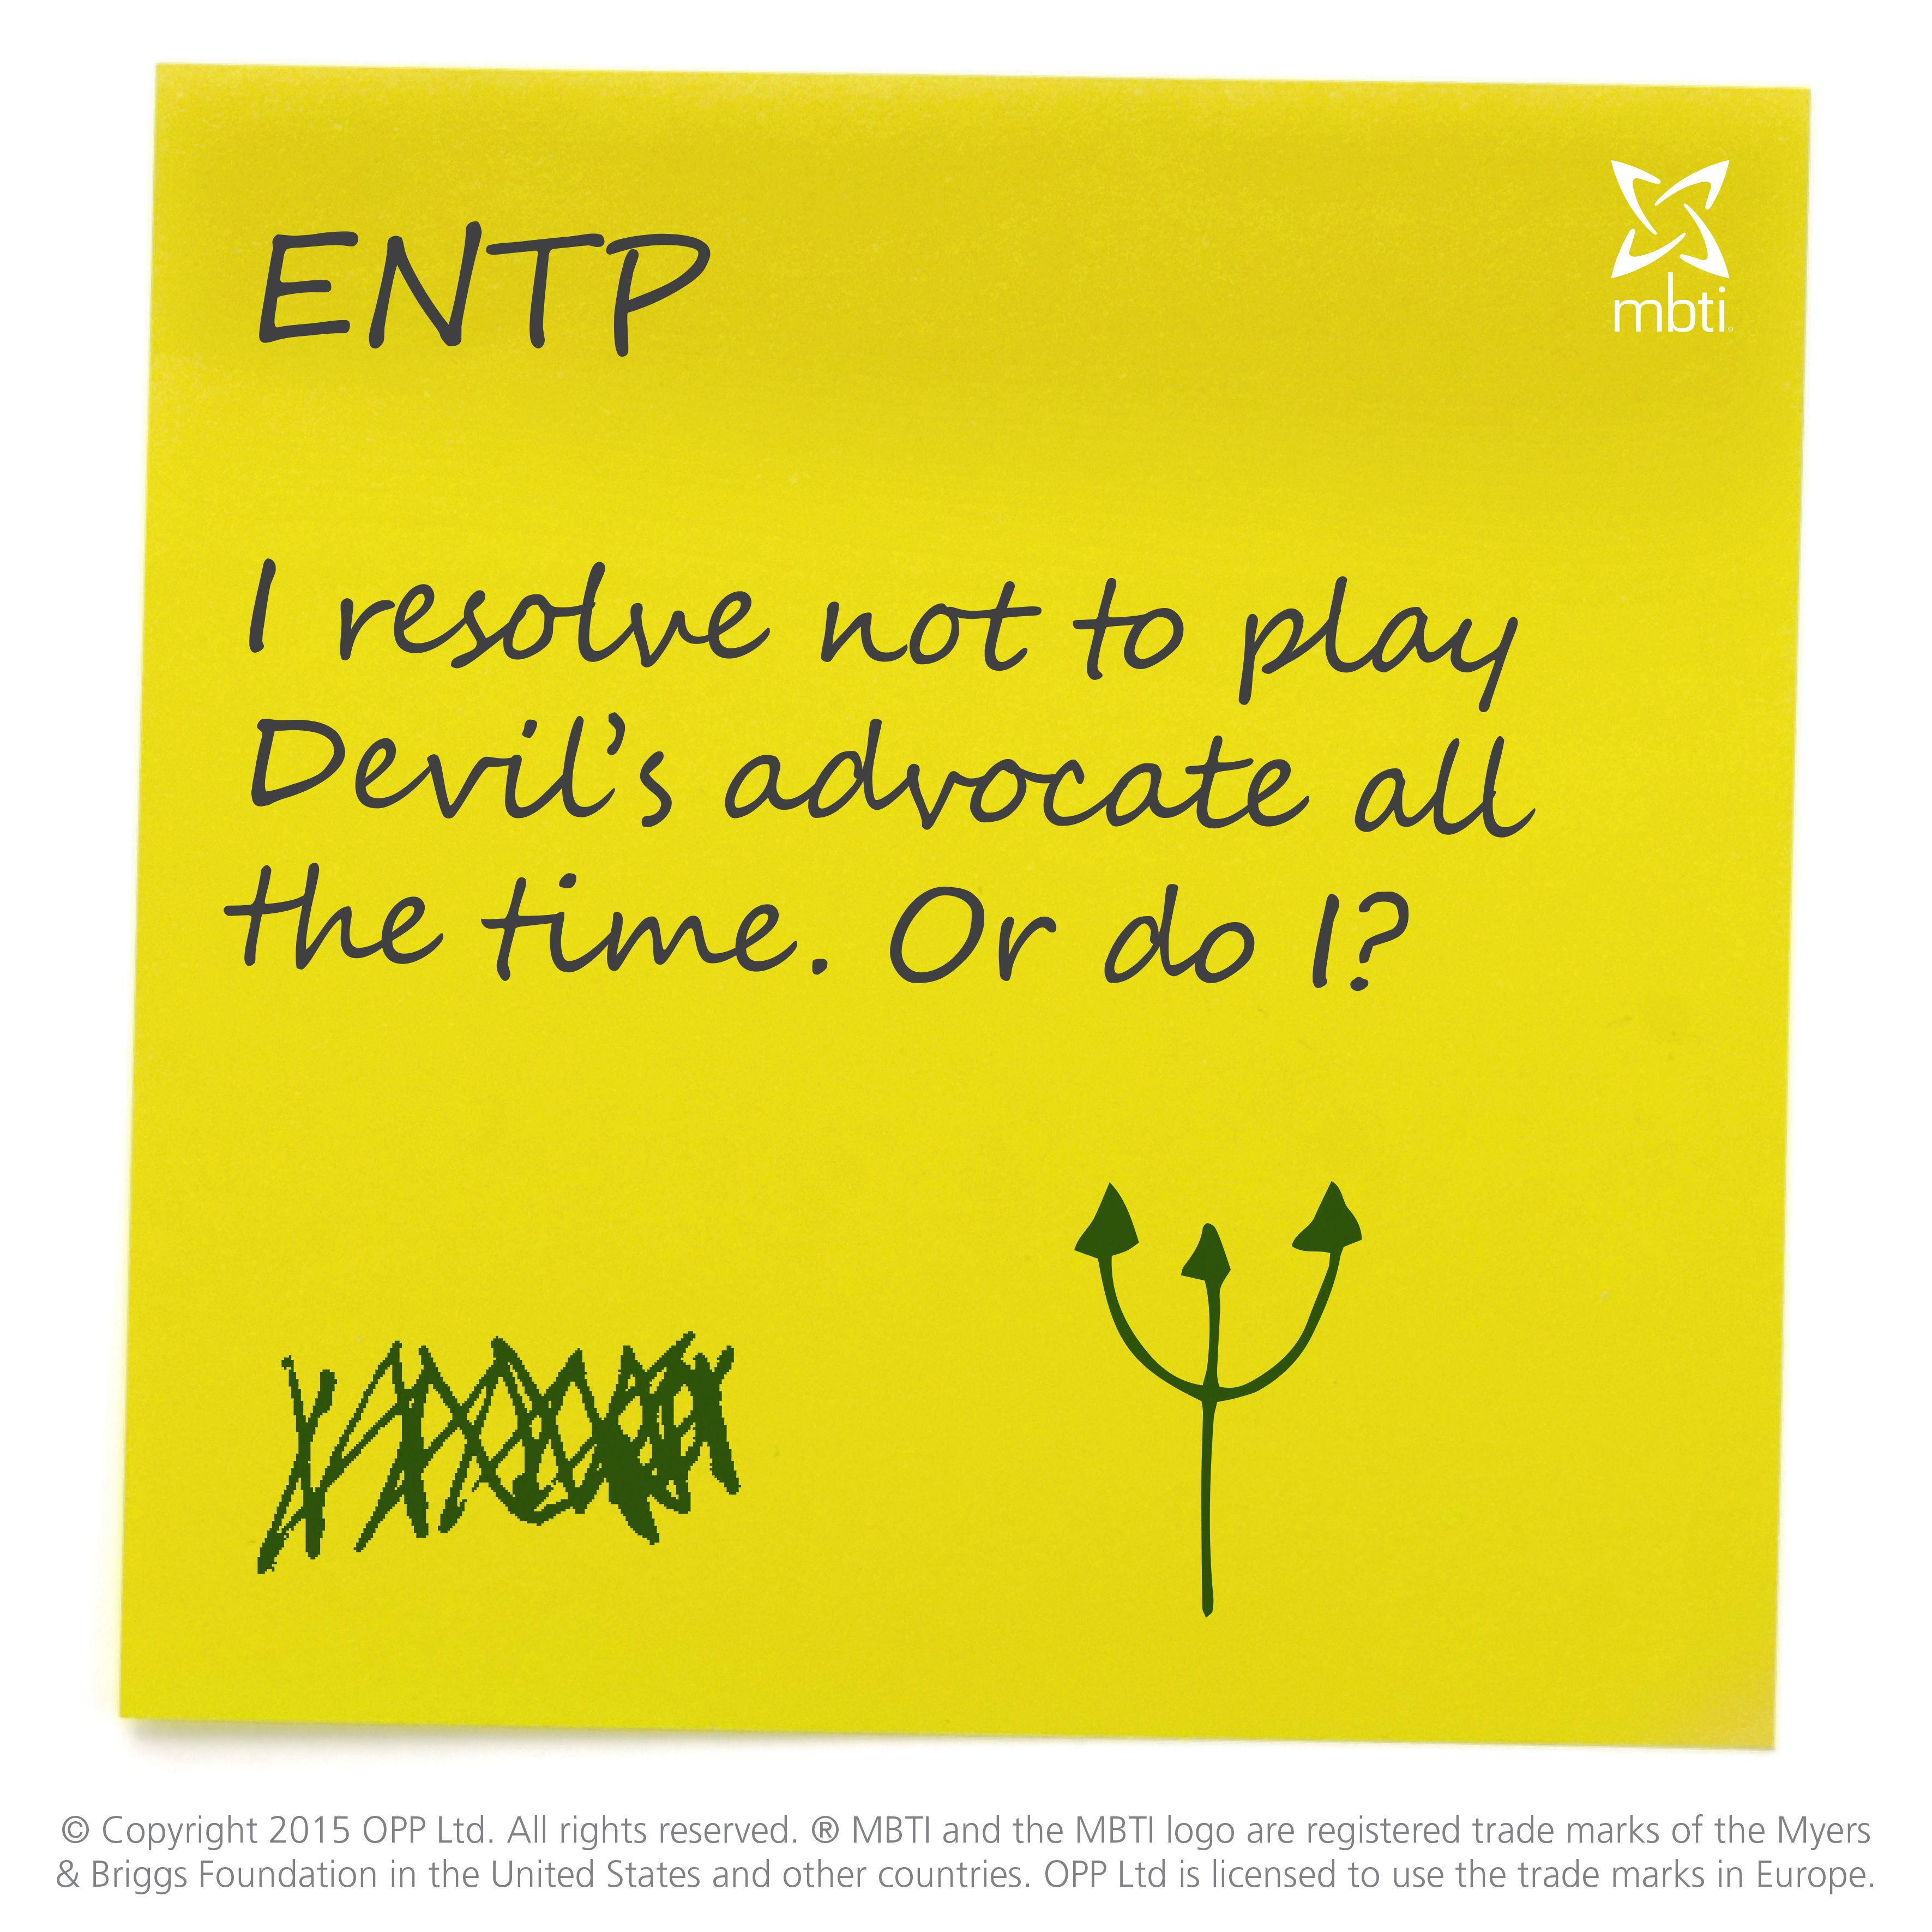 ENTP New Year's Resolutions